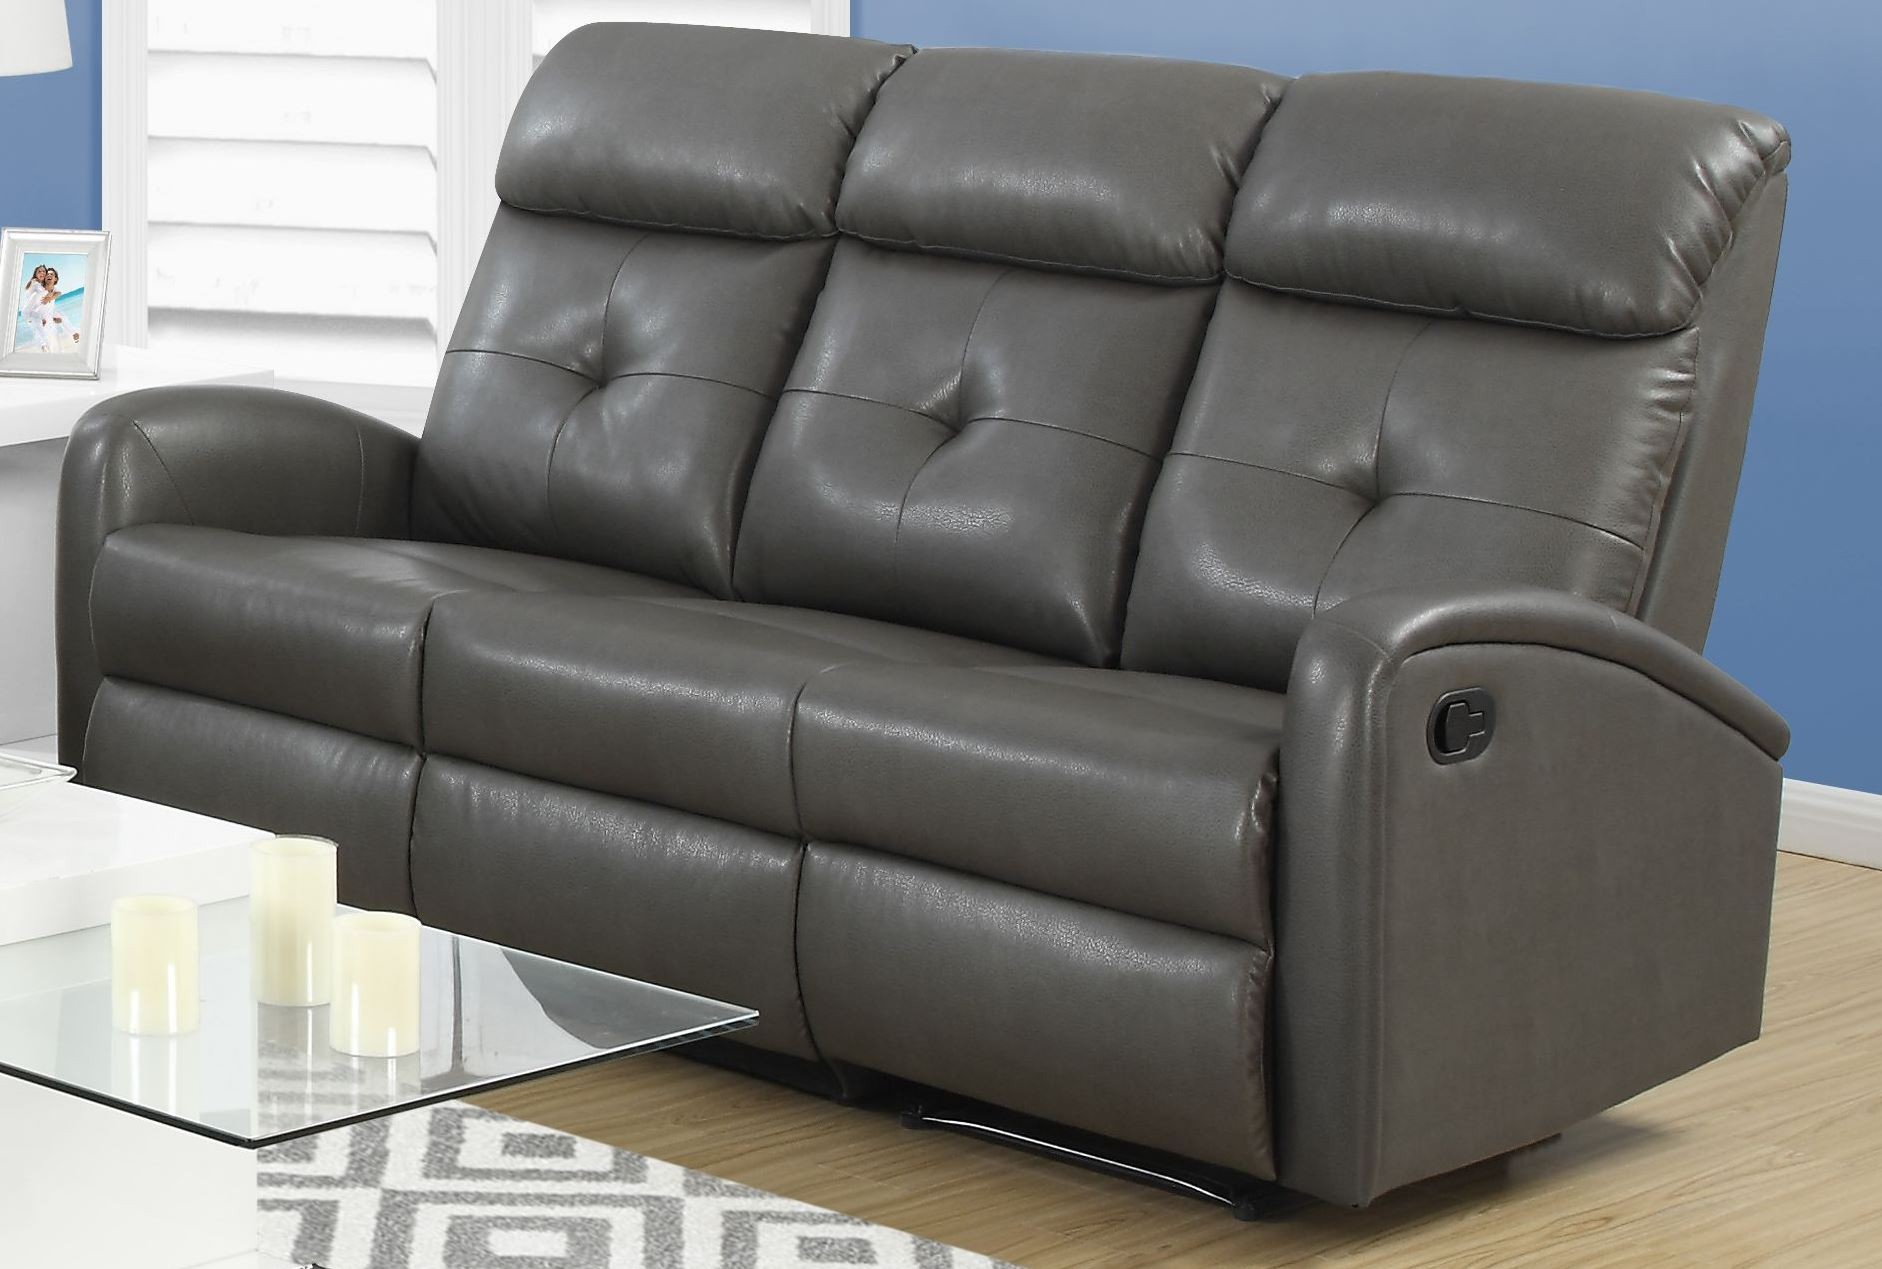 88gy 3 charcoal grey bonded leather reclining sofa 88gy 3 monarch. Black Bedroom Furniture Sets. Home Design Ideas